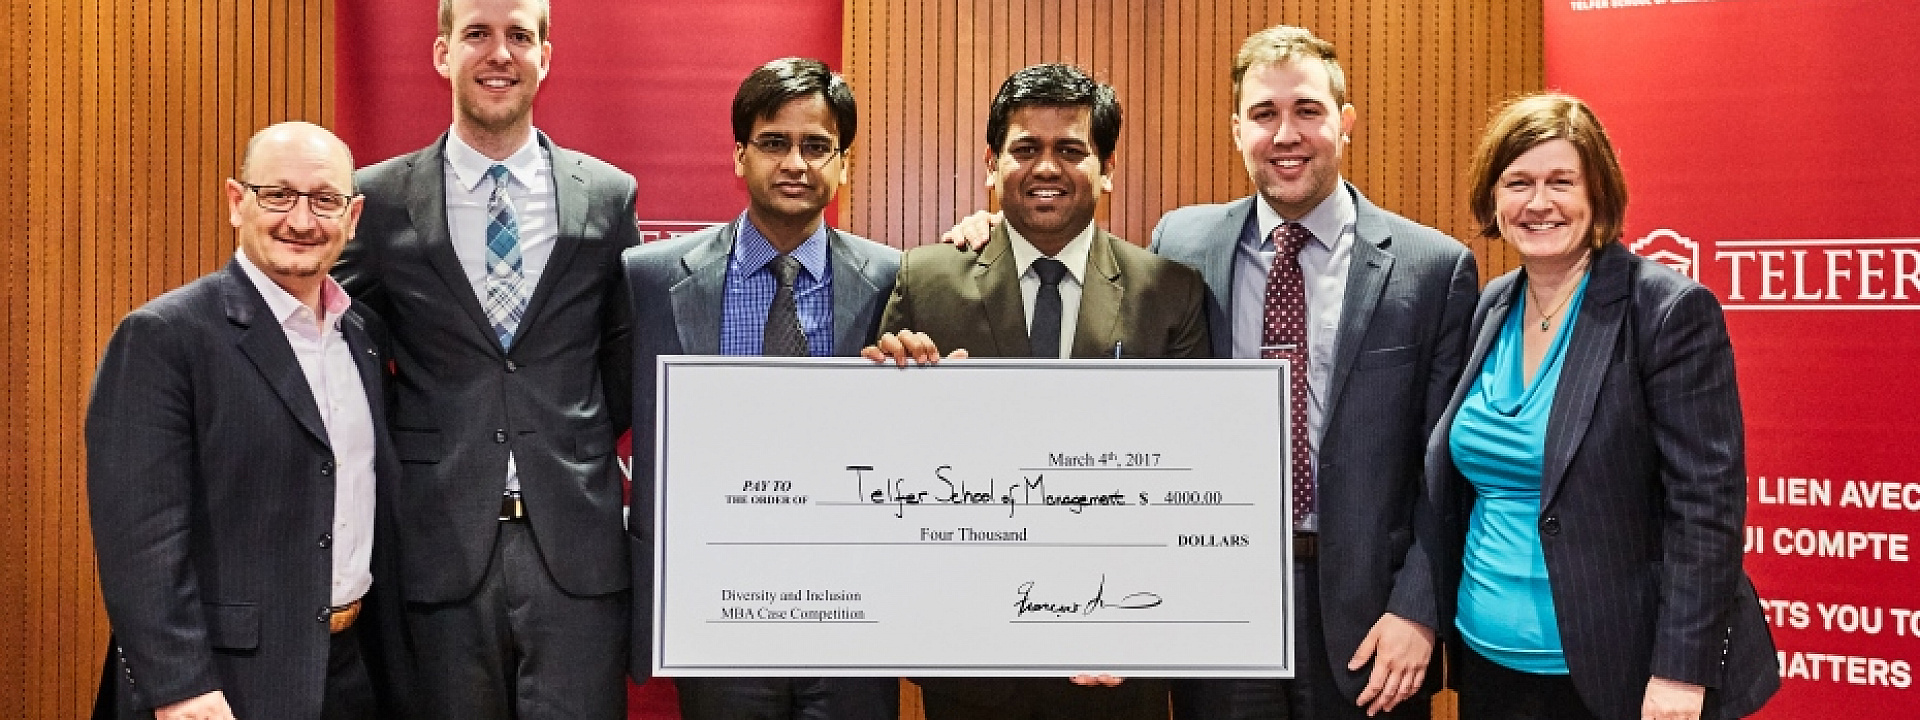 Telfer promotes Diversity and Inclusion during Second Annual Case Competition